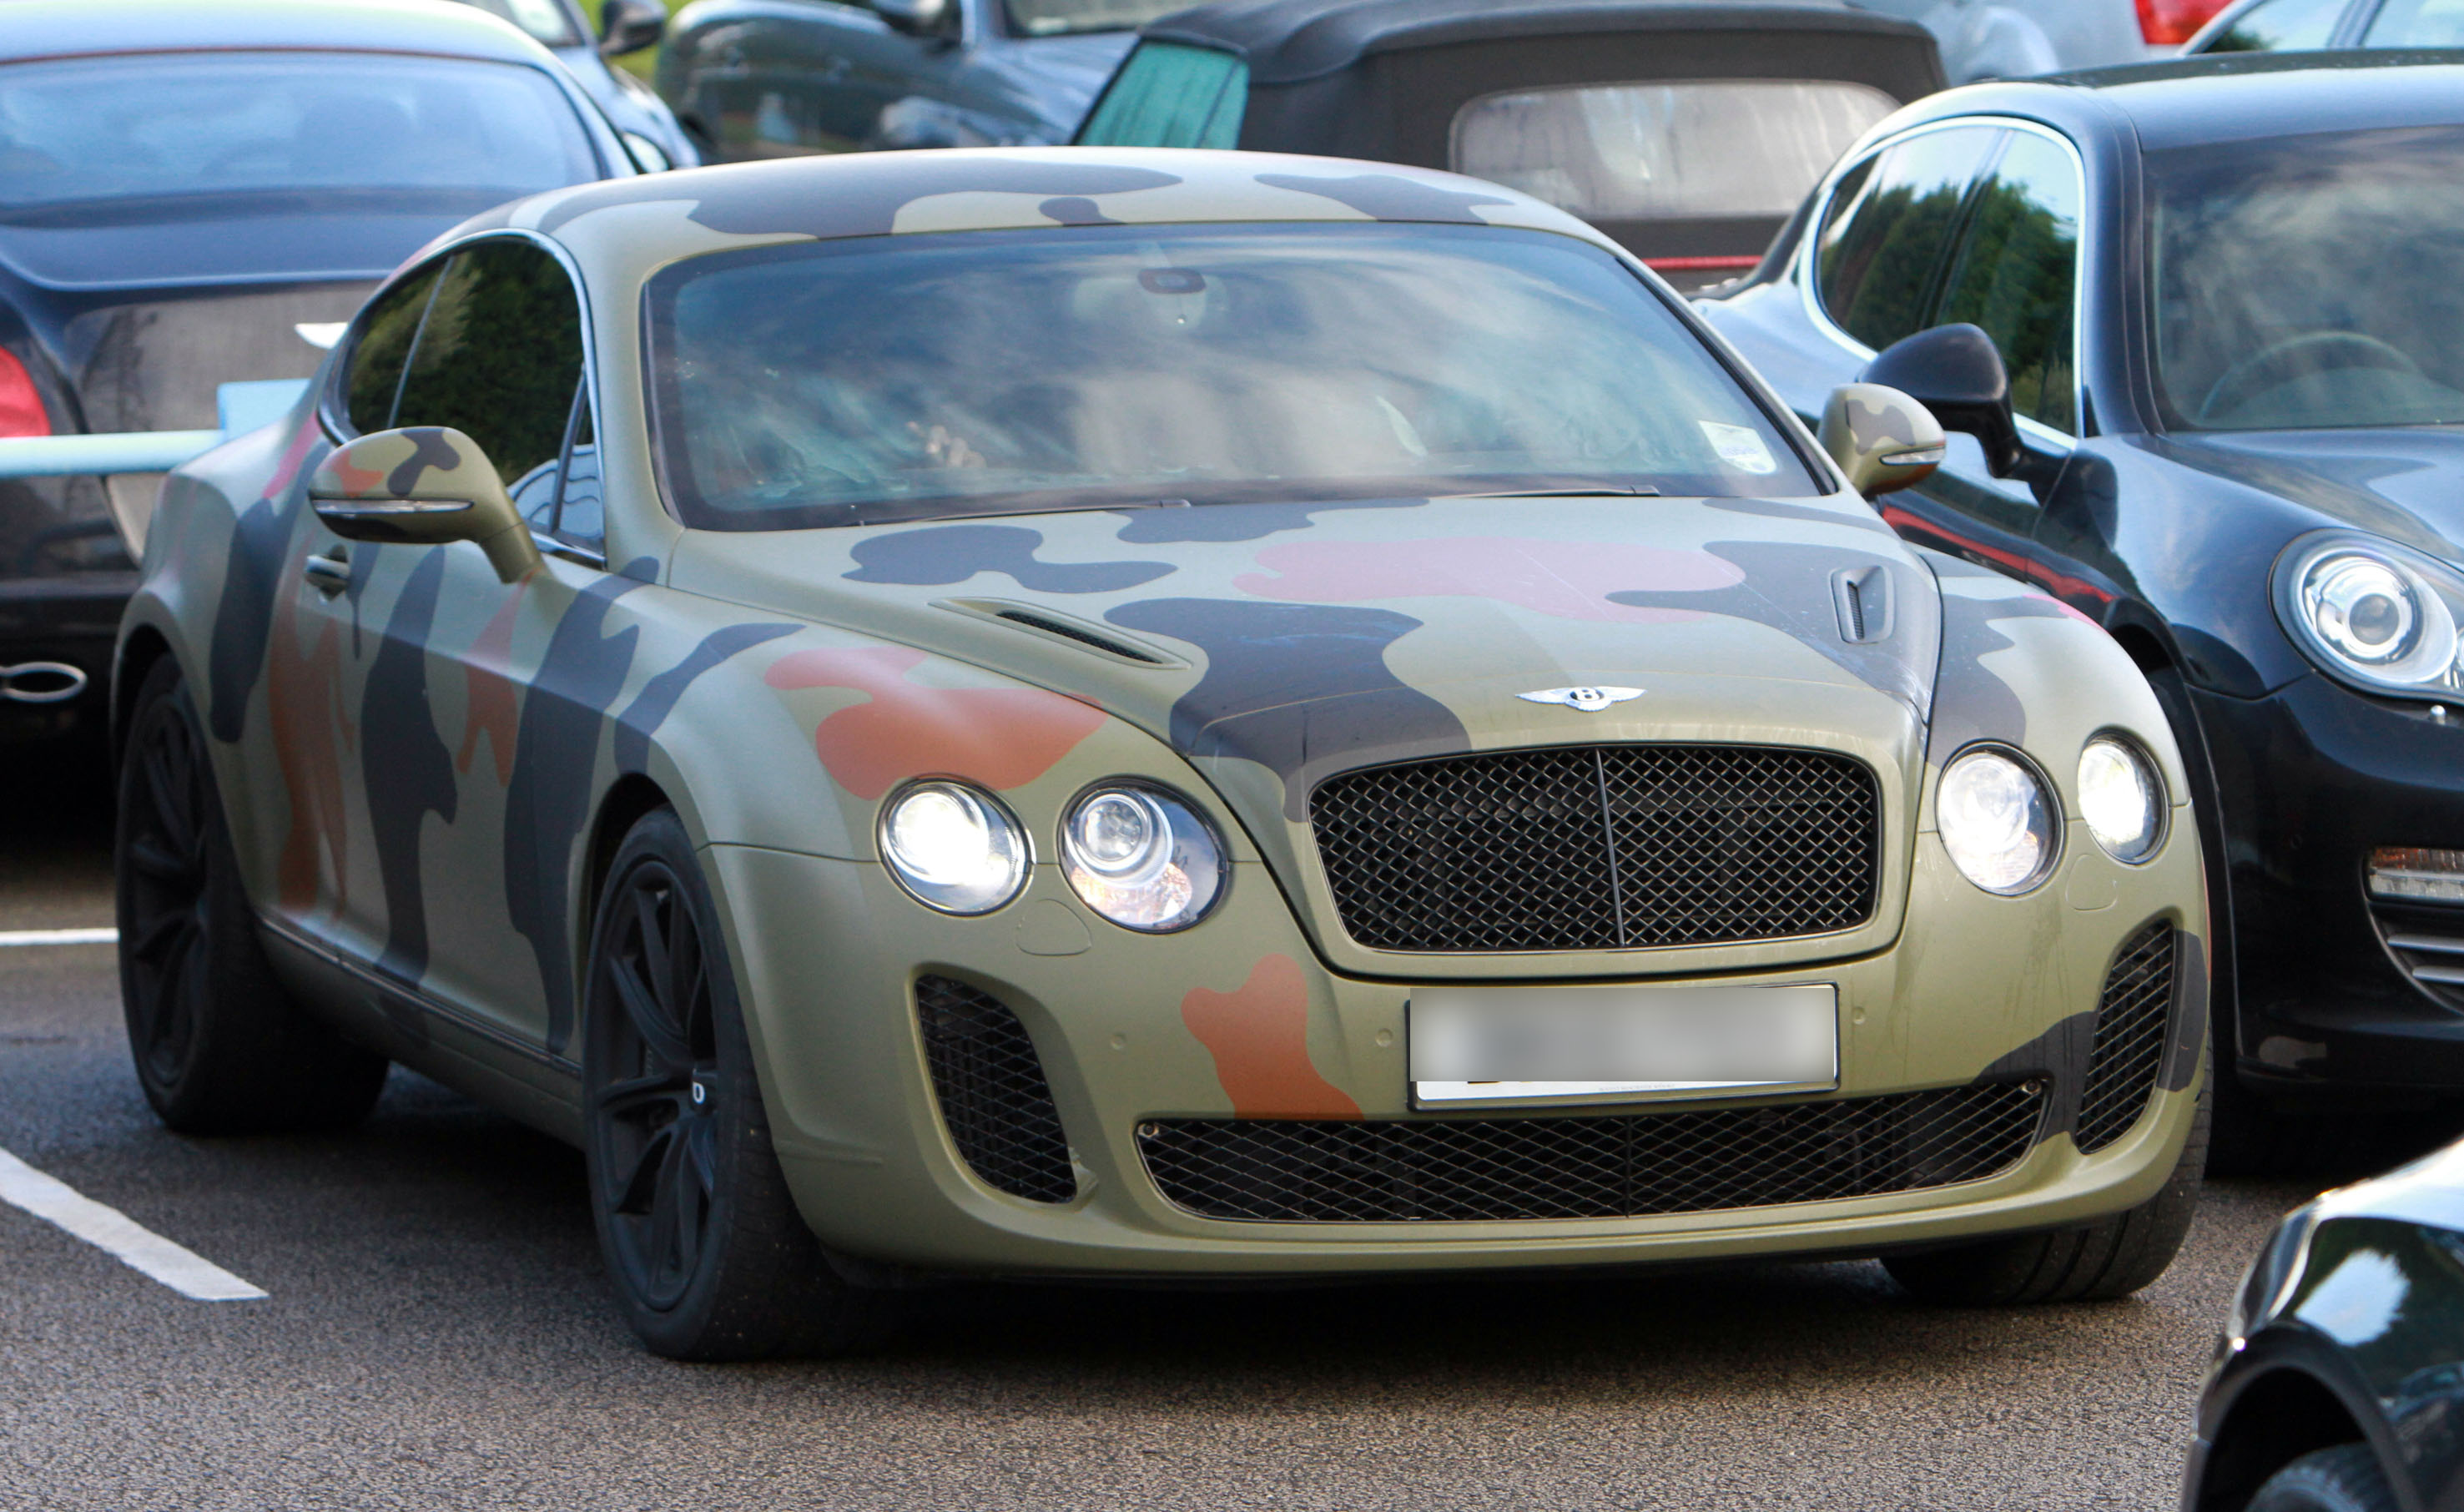 Mario Balotelli with his camouflage car leaving Manchester City training ground